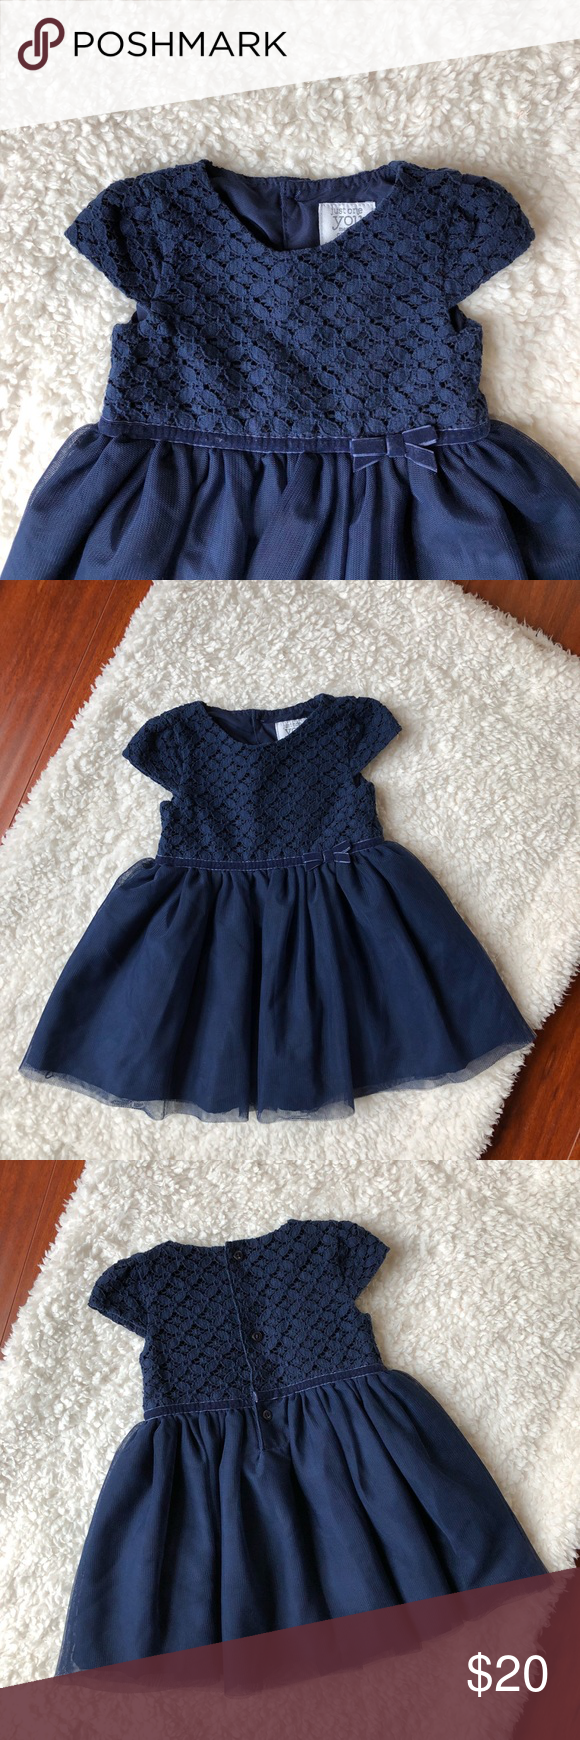 fdfd224722d44 Carter's 6mo Baby Girl Dress Carters special occasion dress. Size 6mo.  Color navy. Worn once. Carter's Dresses